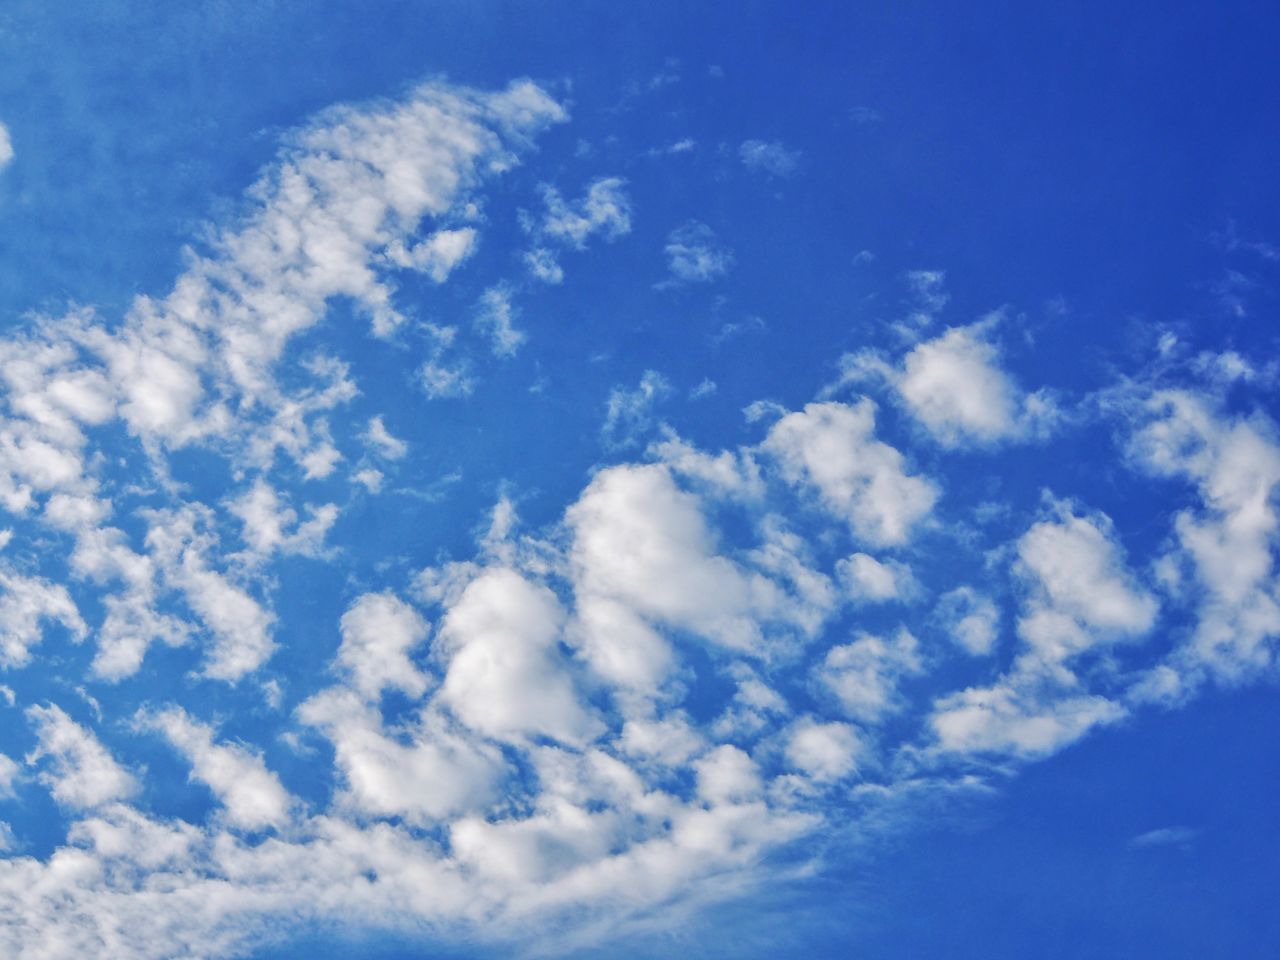 blue, sky, beauty in nature, nature, scenics, no people, sky only, tranquility, backgrounds, cloud - sky, low angle view, day, full frame, outdoors